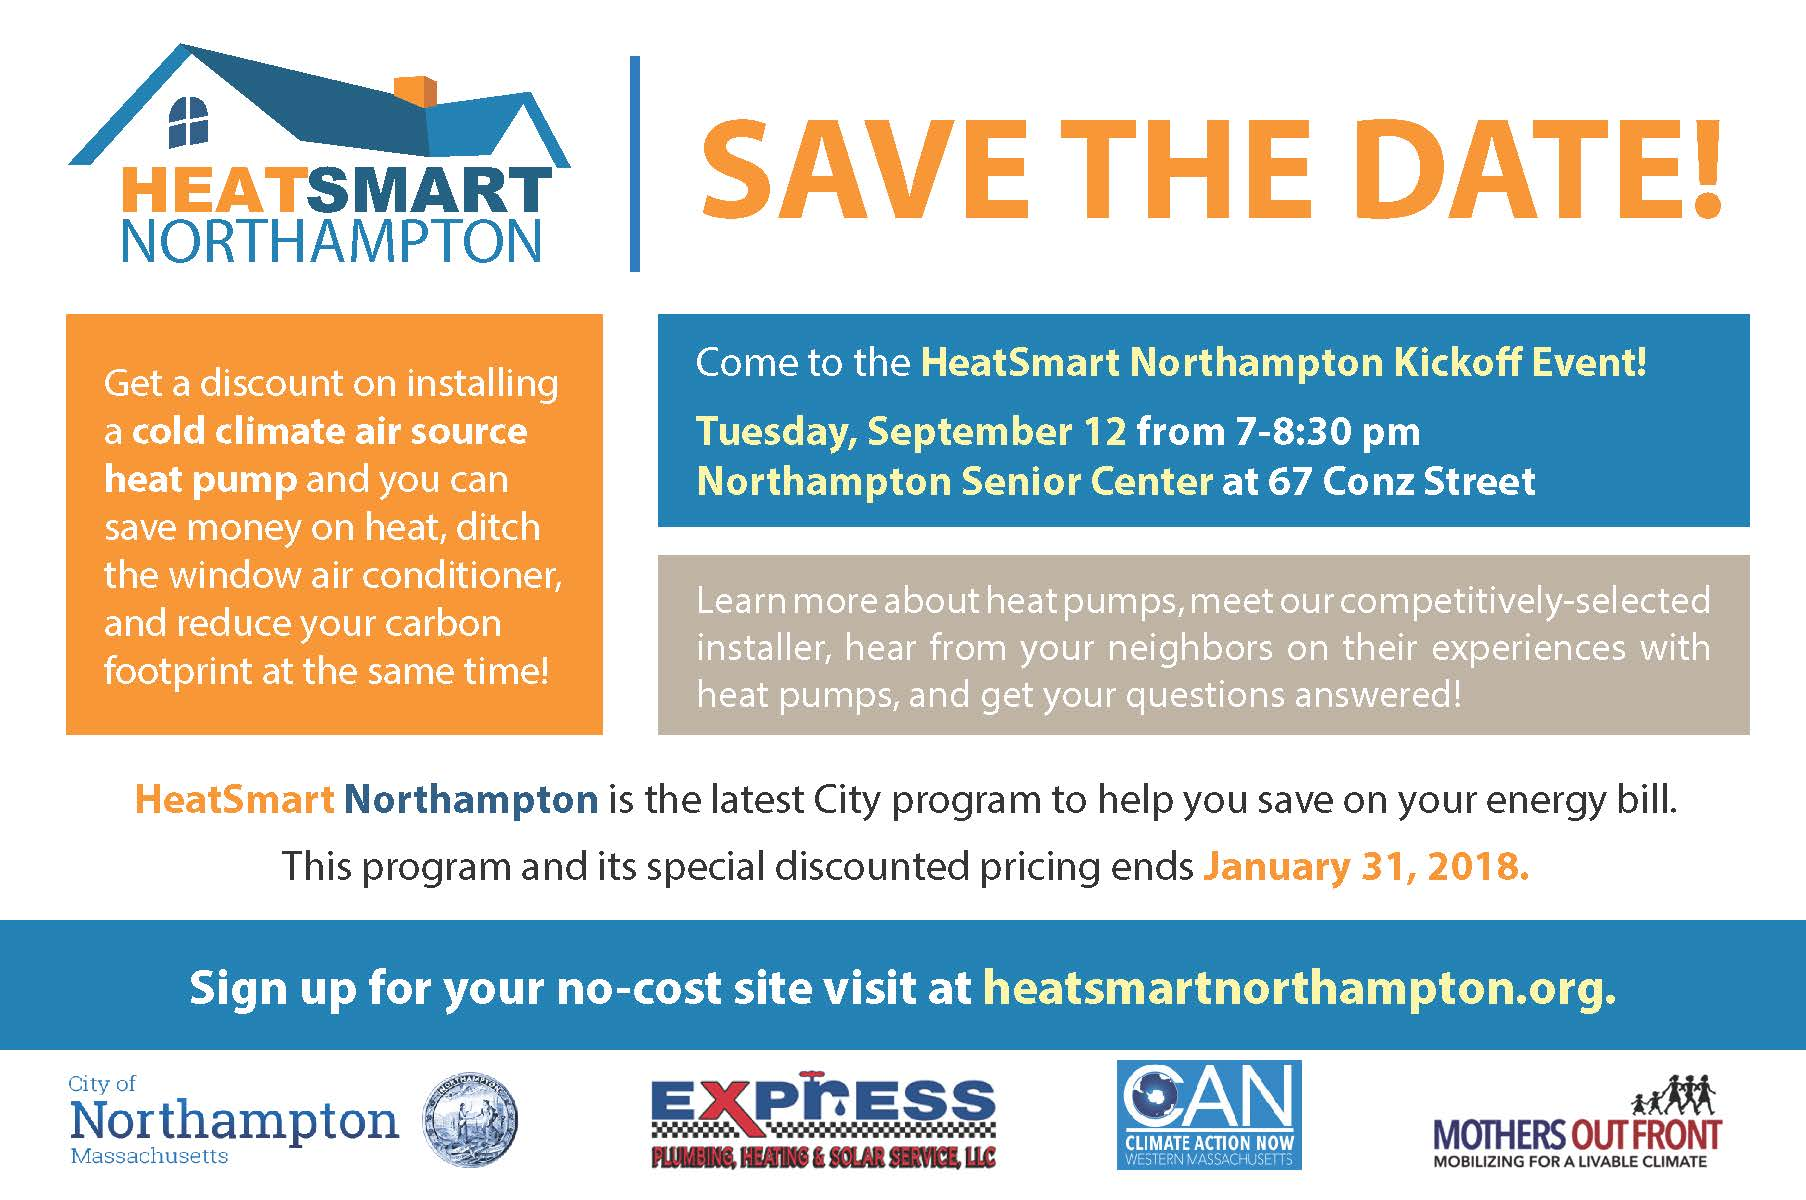 HeatSmart Northampton - Save the Date